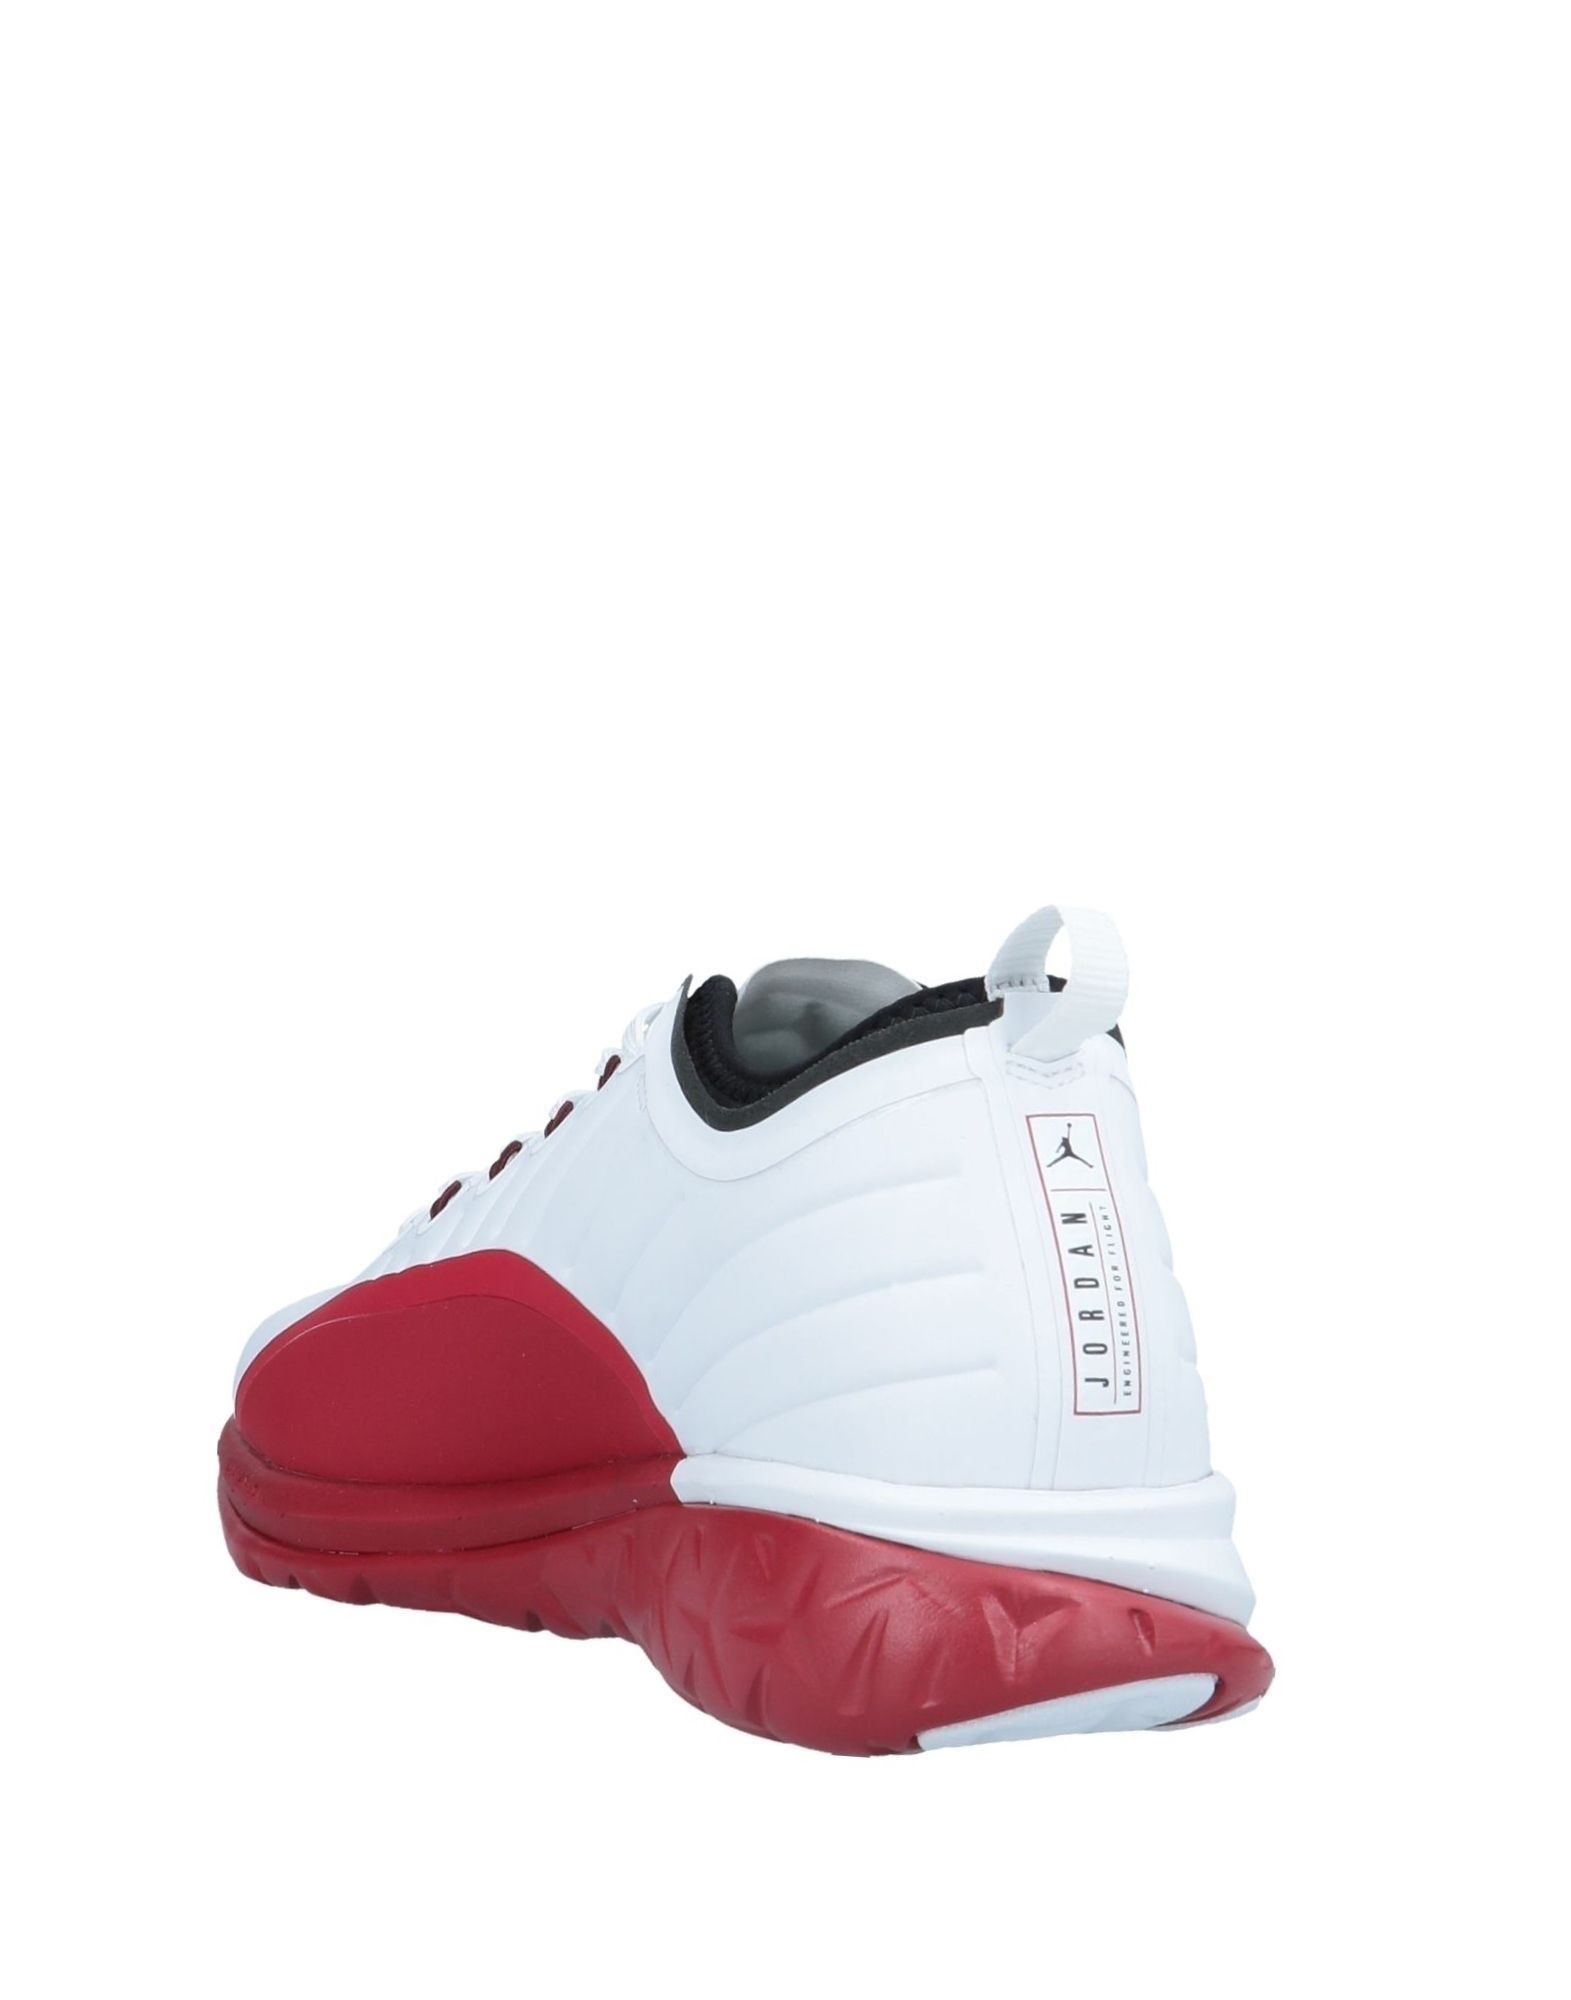 Jordan Sneakers - Men Jordan Sneakers Sneakers Sneakers online on  Canada - 11573691UD 57bb13